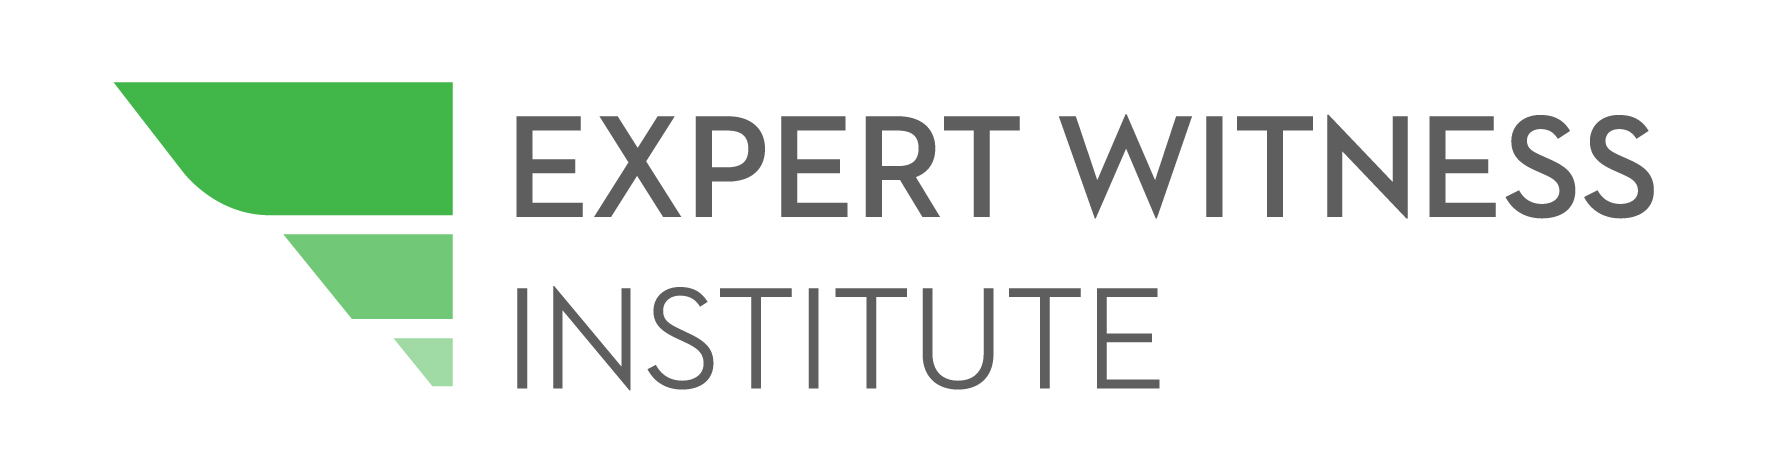 Expert Witness Institute